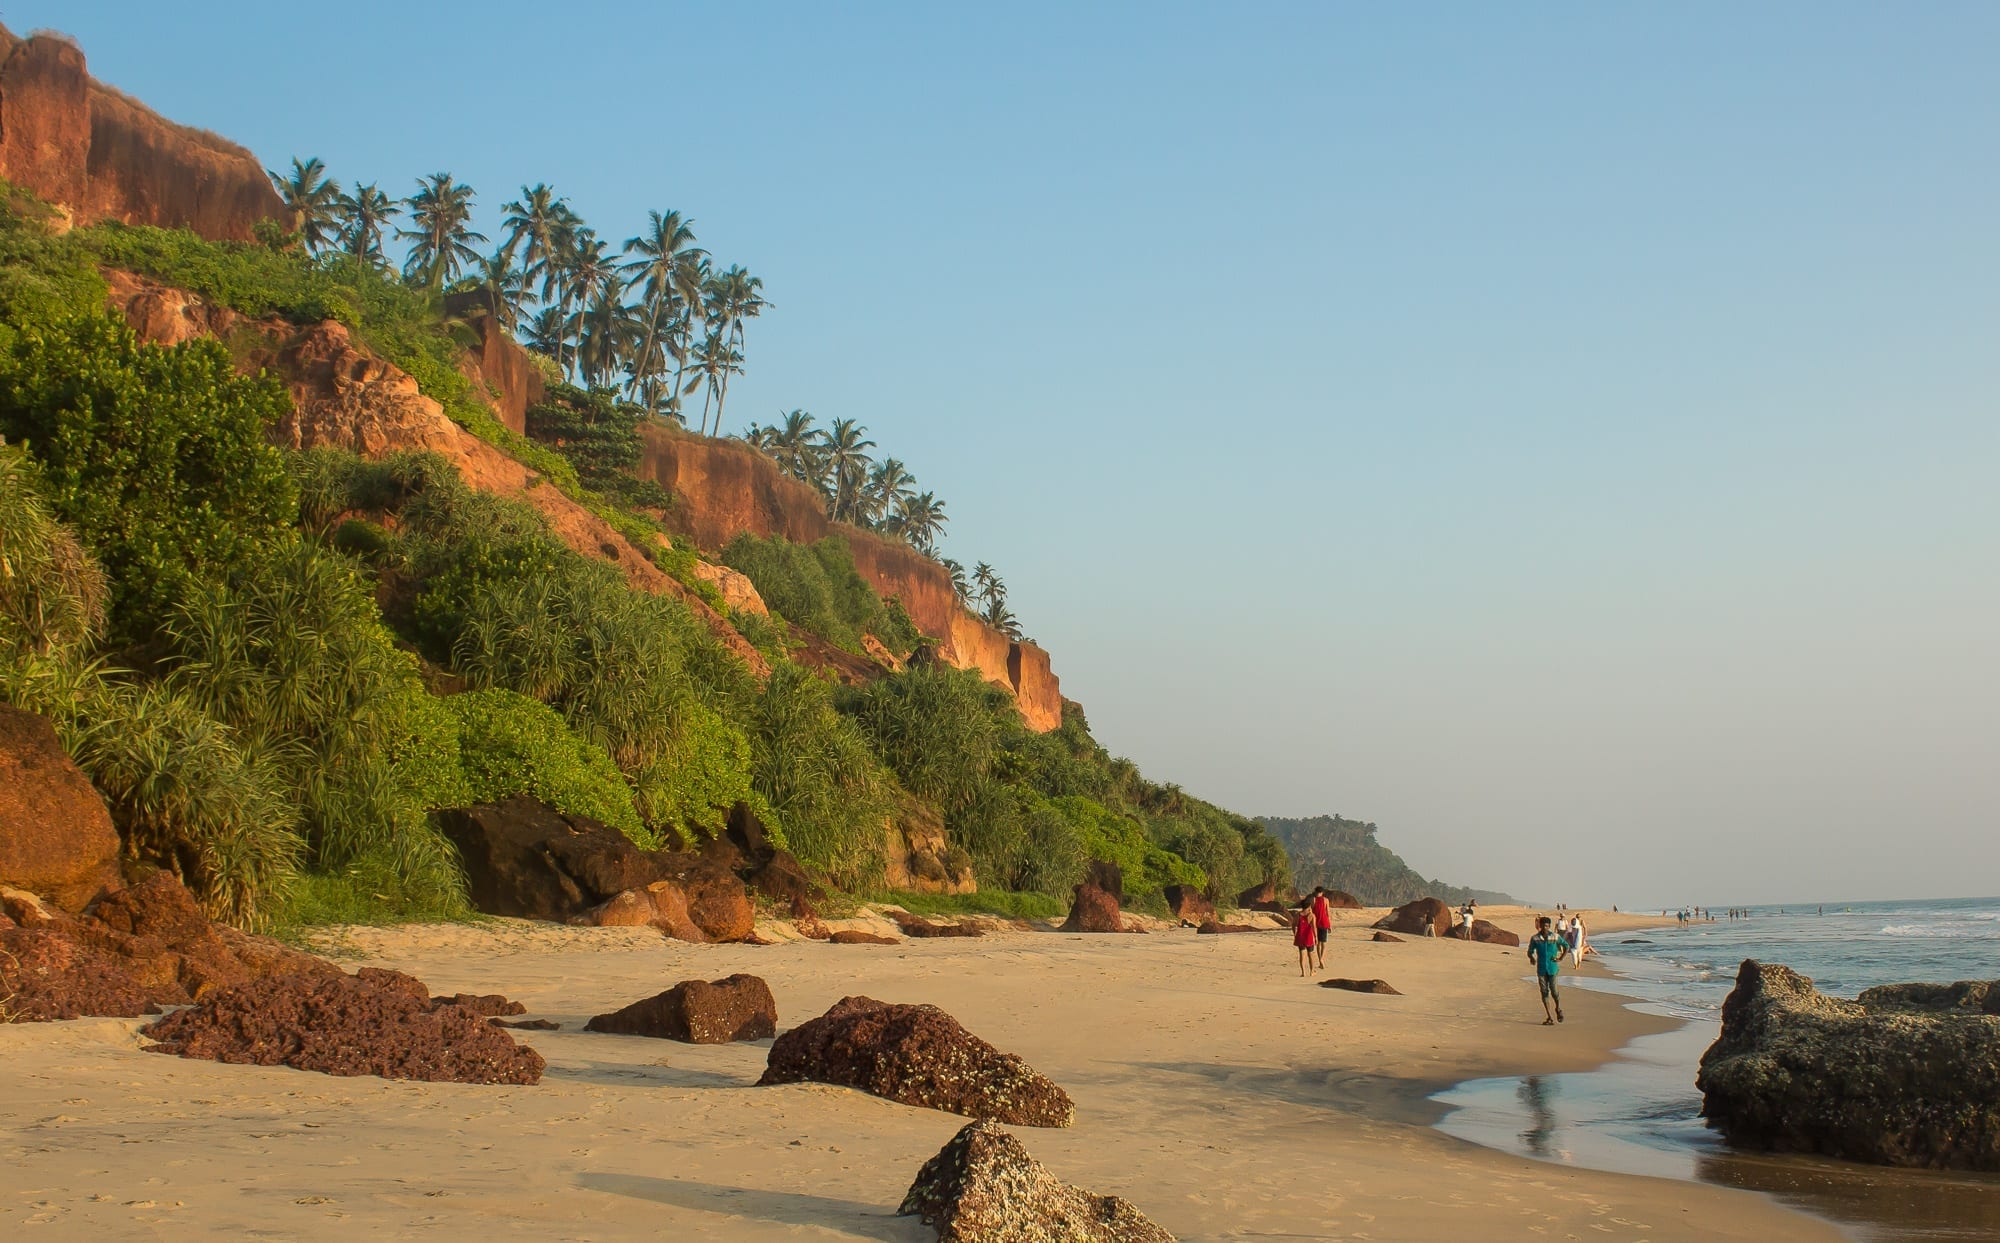 Cliffs and beach leading into the ocean in Varkala, Kerala, India, palm trees rising from the hills.